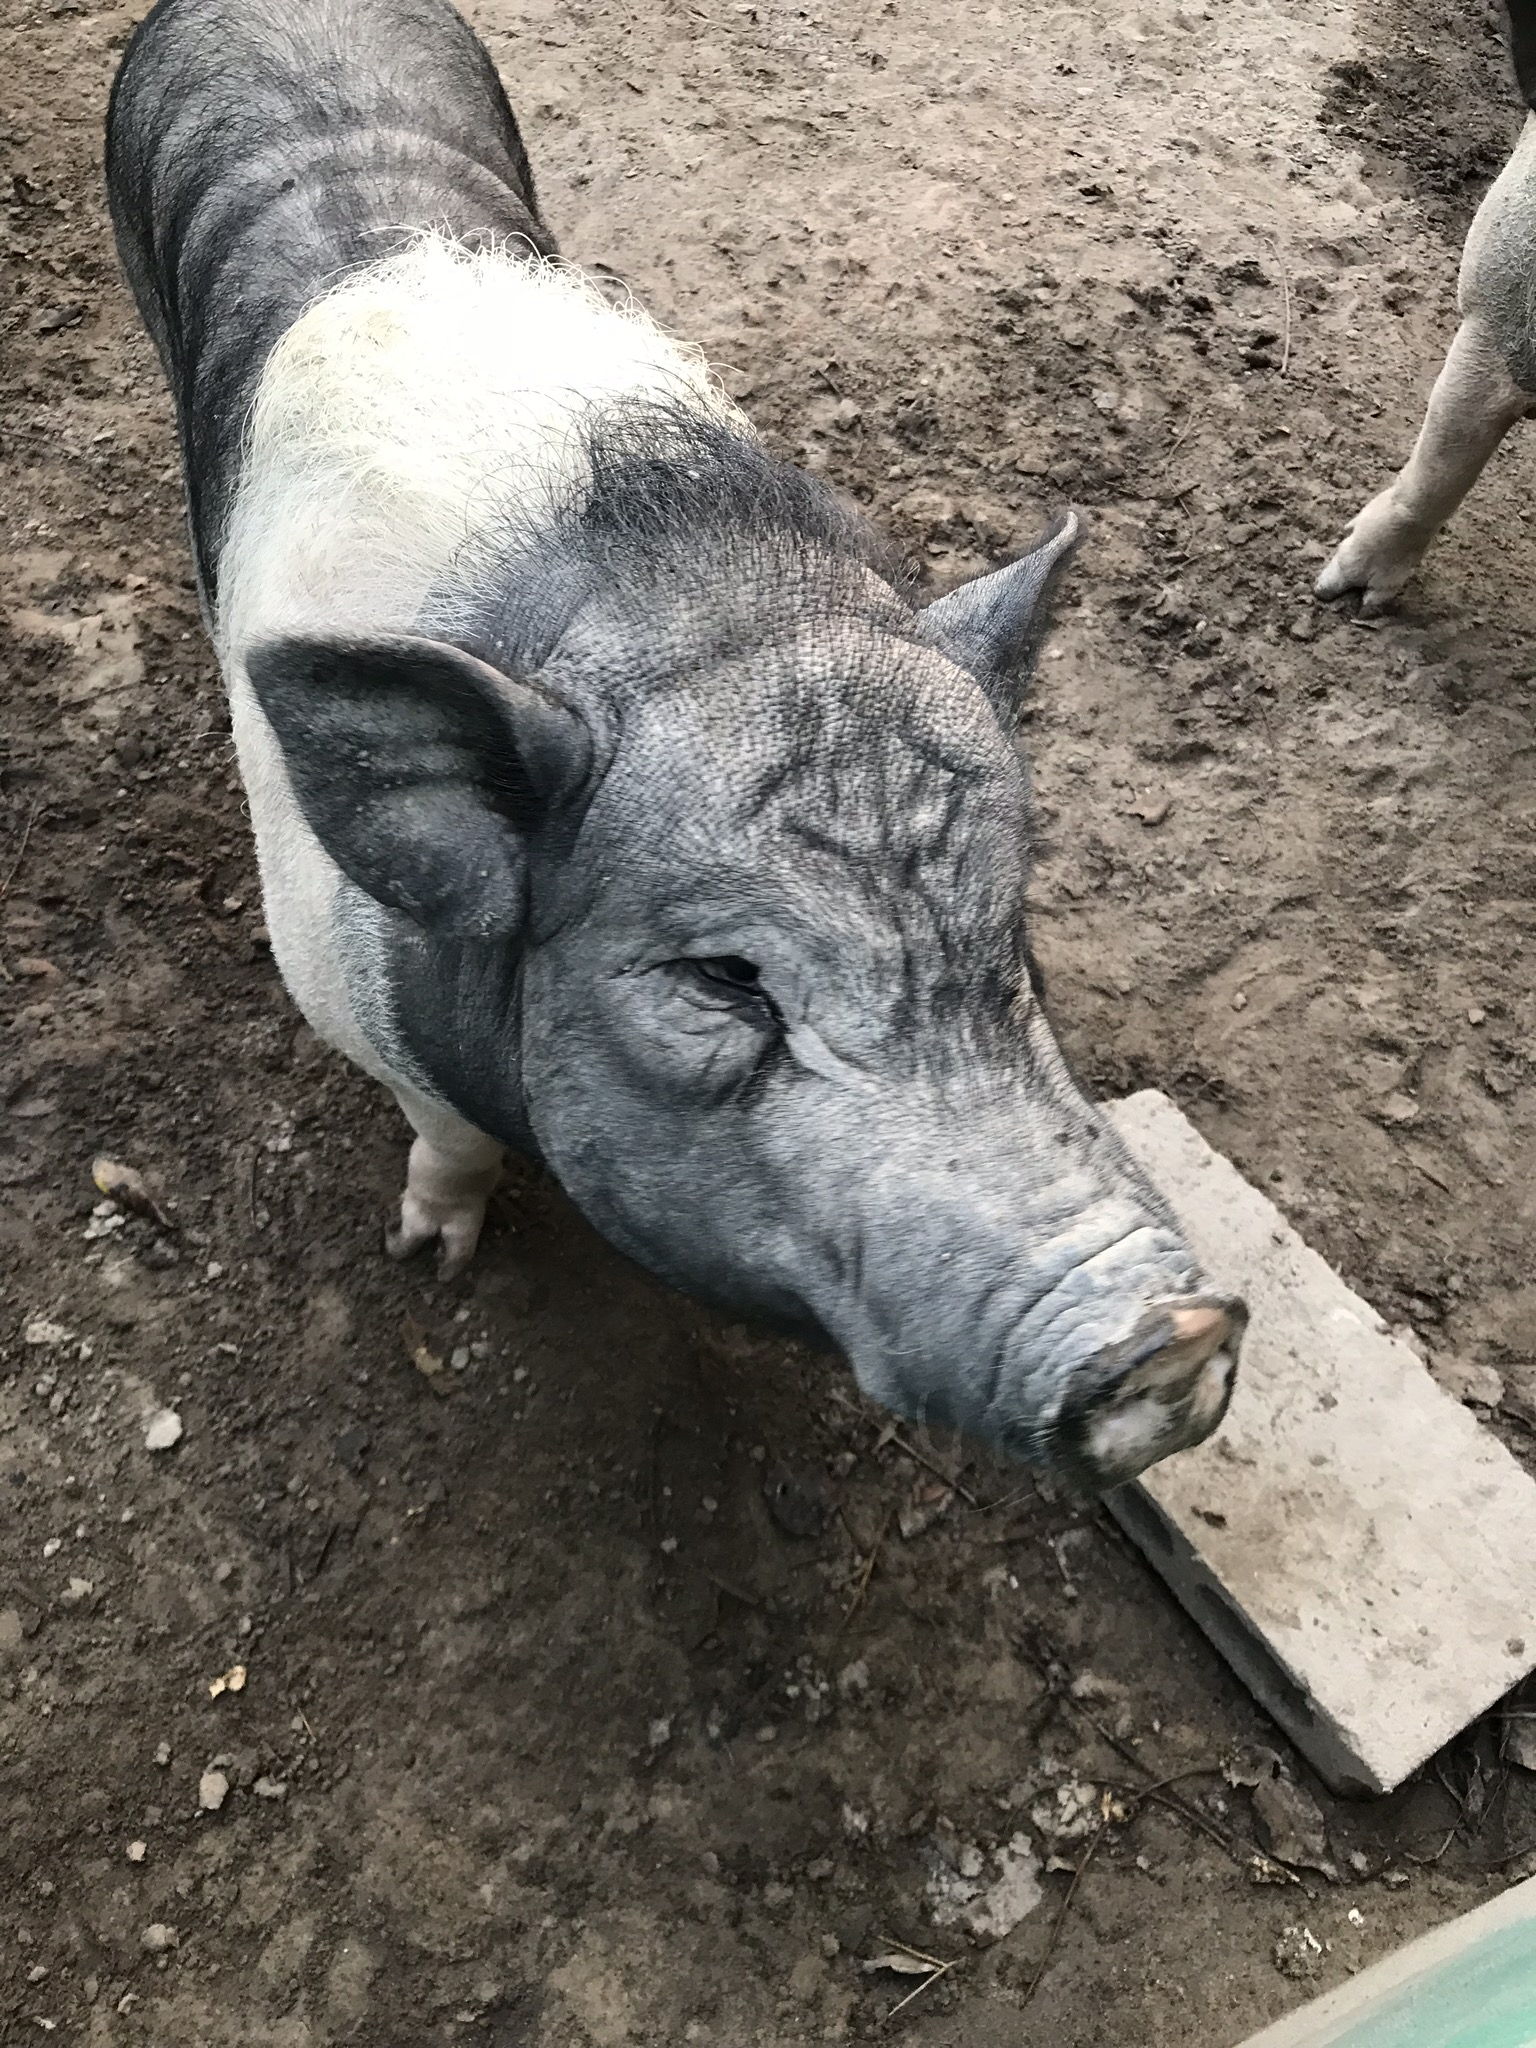 One of the many piggies at WFFT